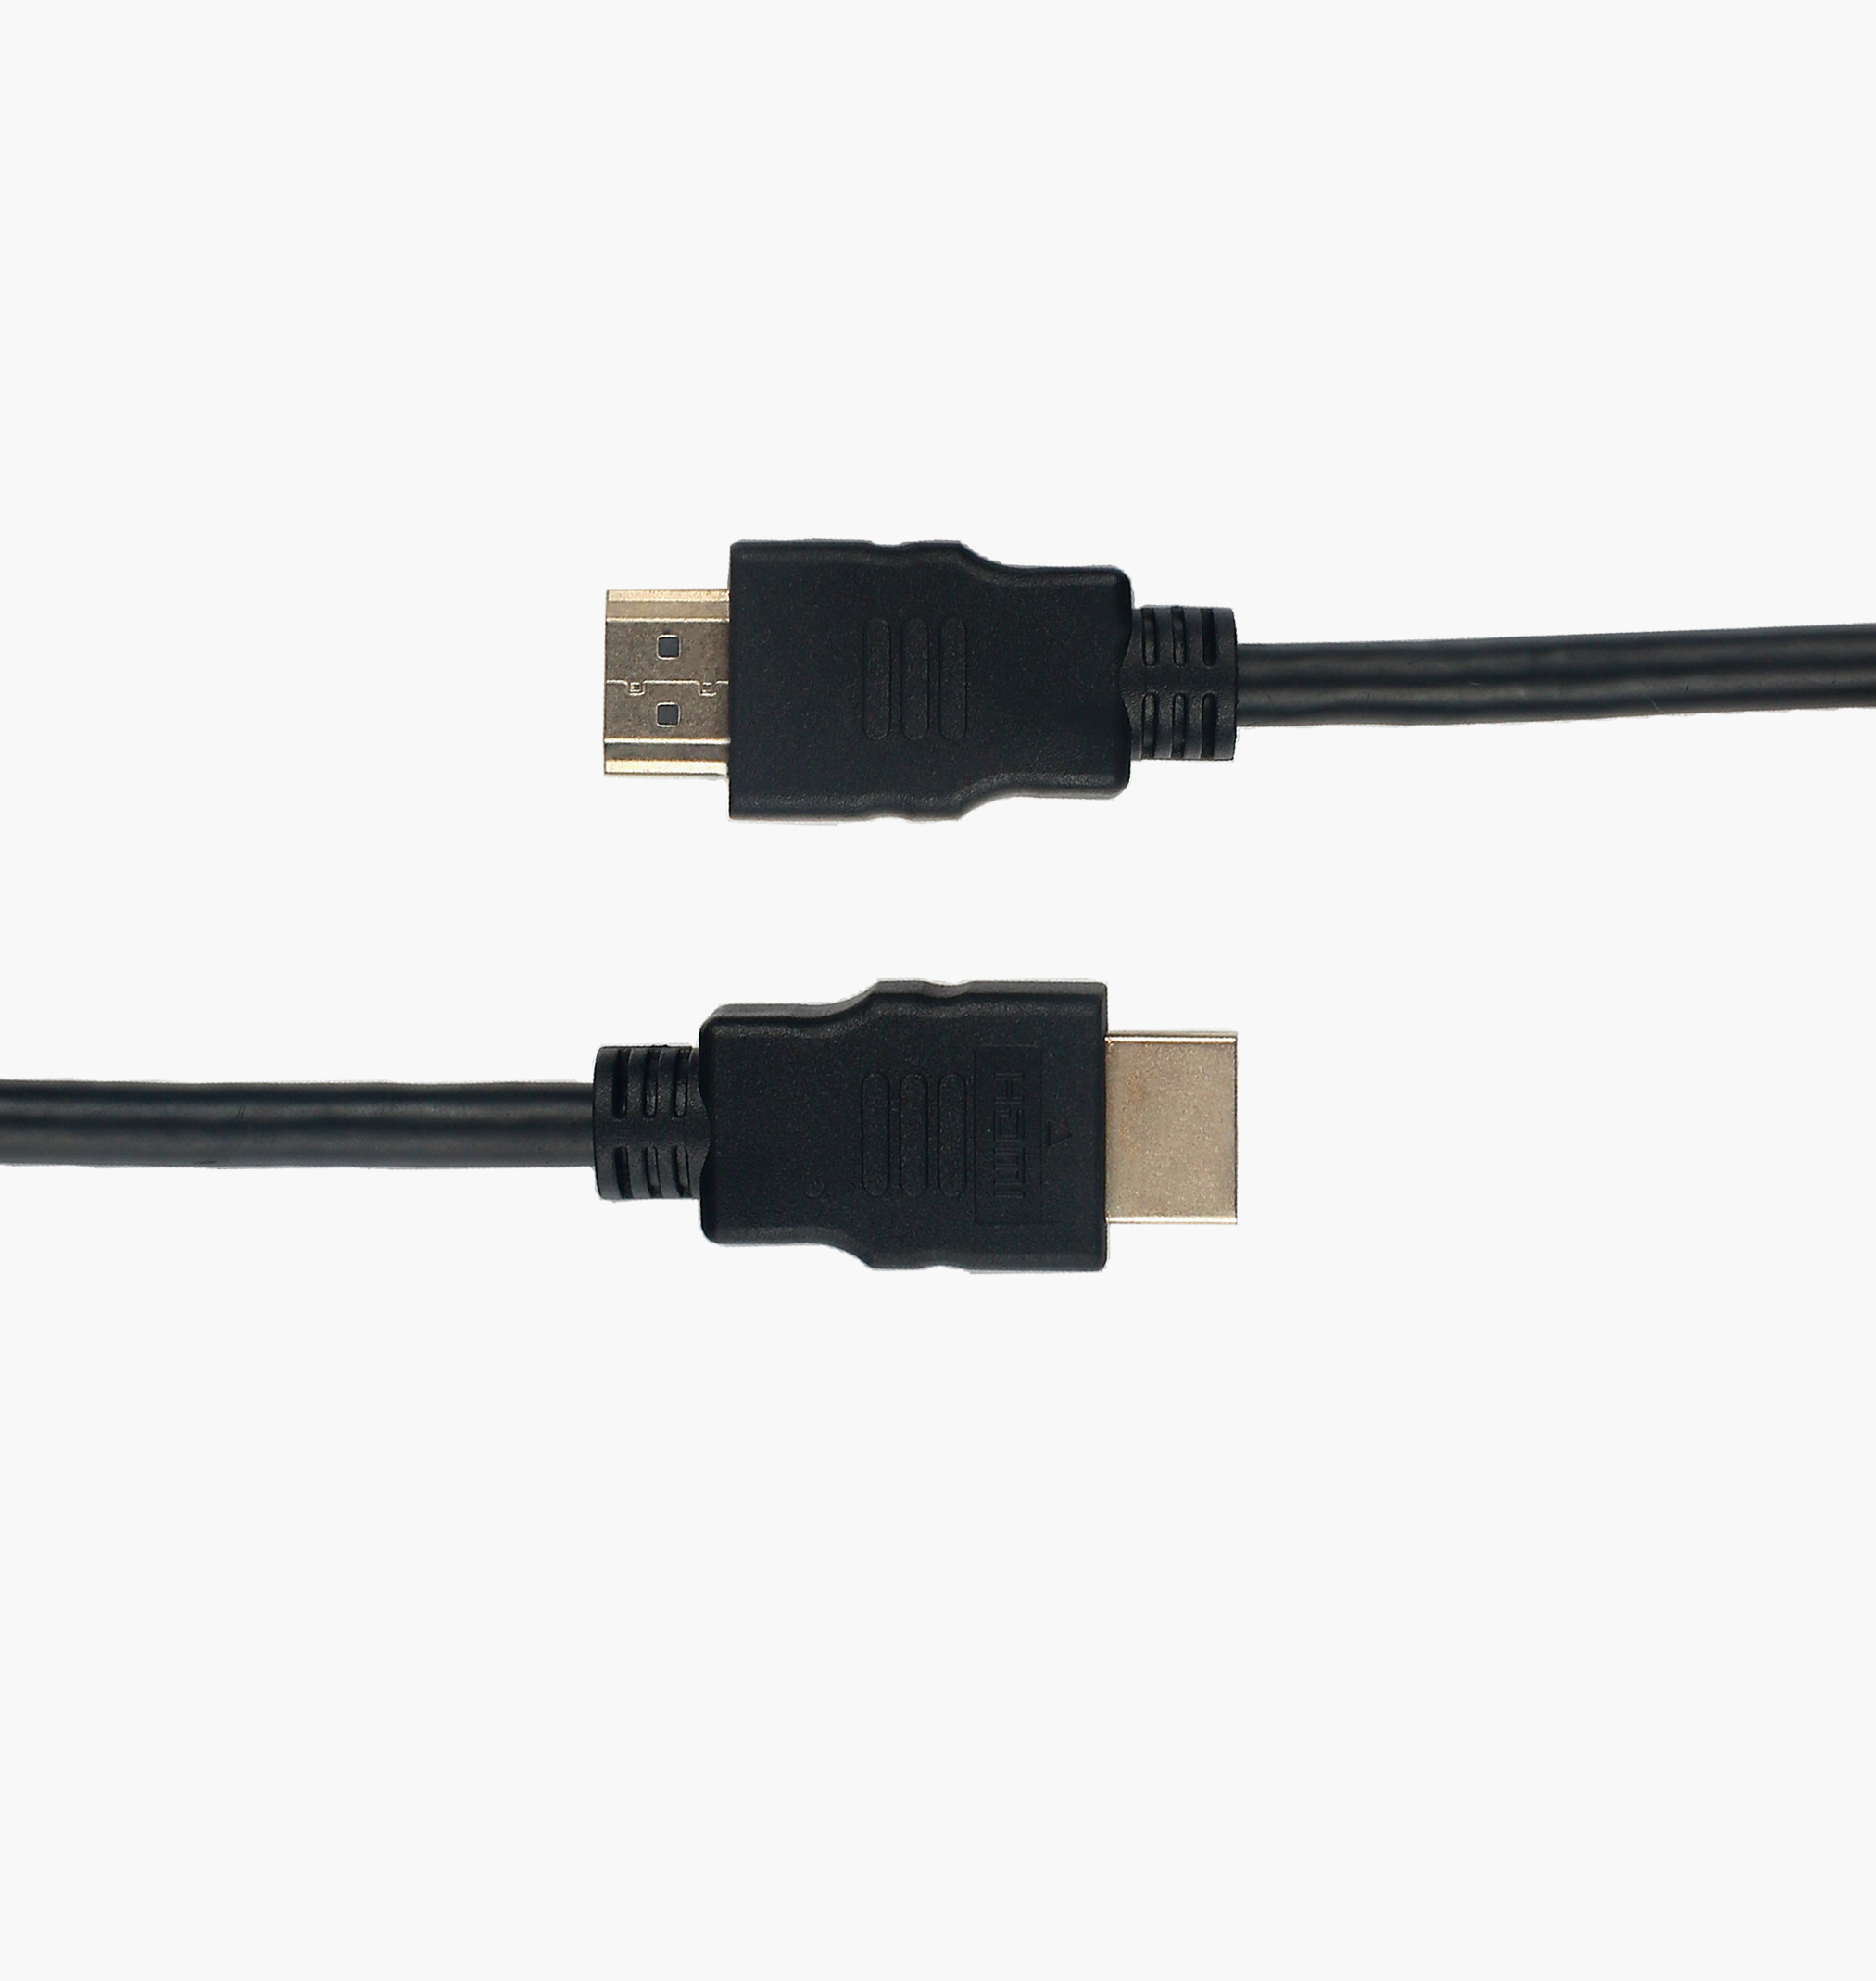 HDMI 2.0 A TO A Cable Bandwidth 18Gbps, 4K 60HZ, HDR, 32 Channels.